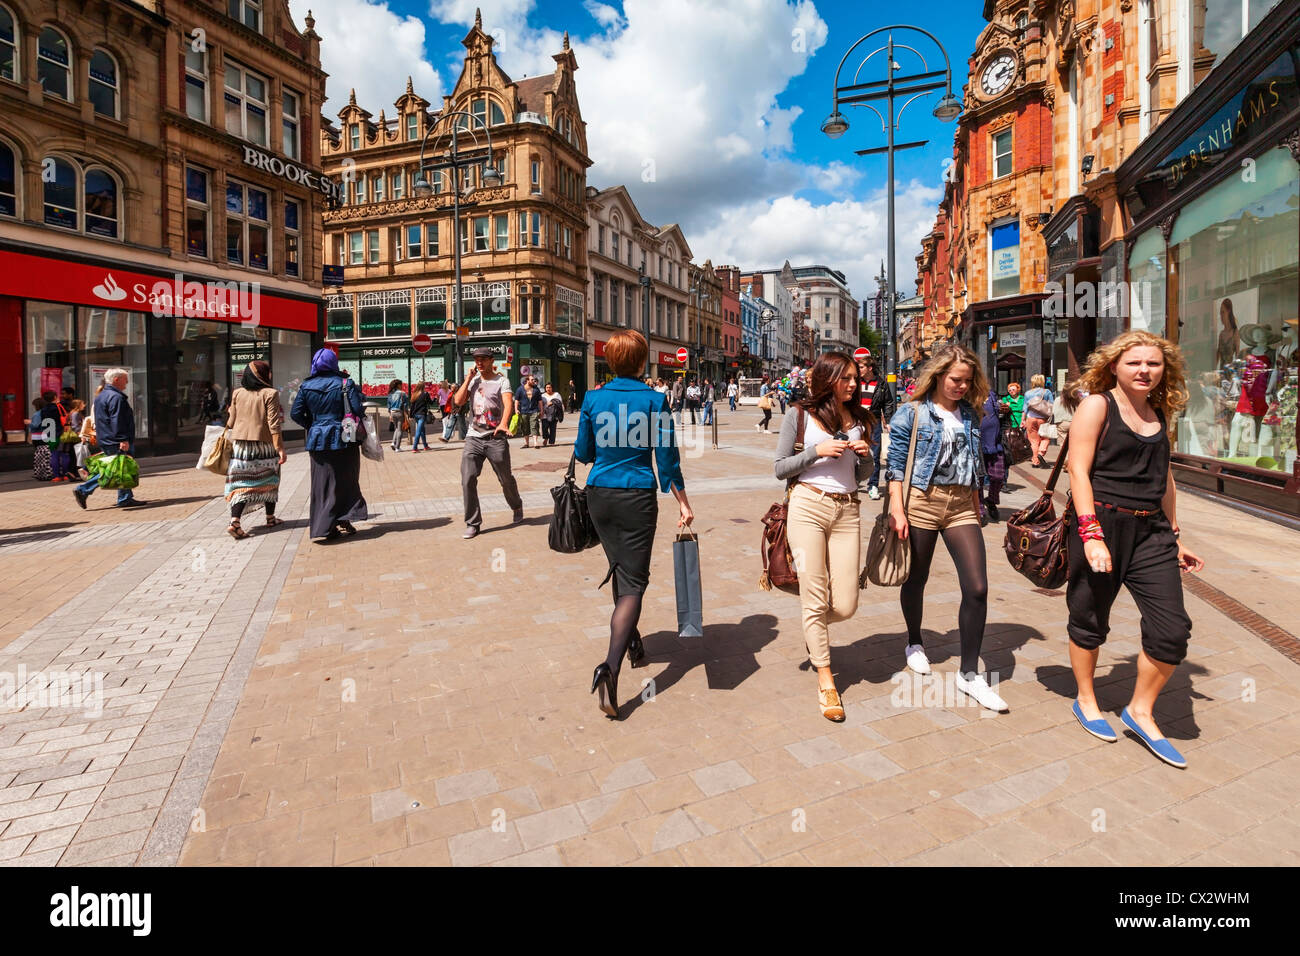 Shoppers and lunch time crowds in Briggate, the main shopping street in the city of Leeds, West Yorkshire, England. - Stock Image